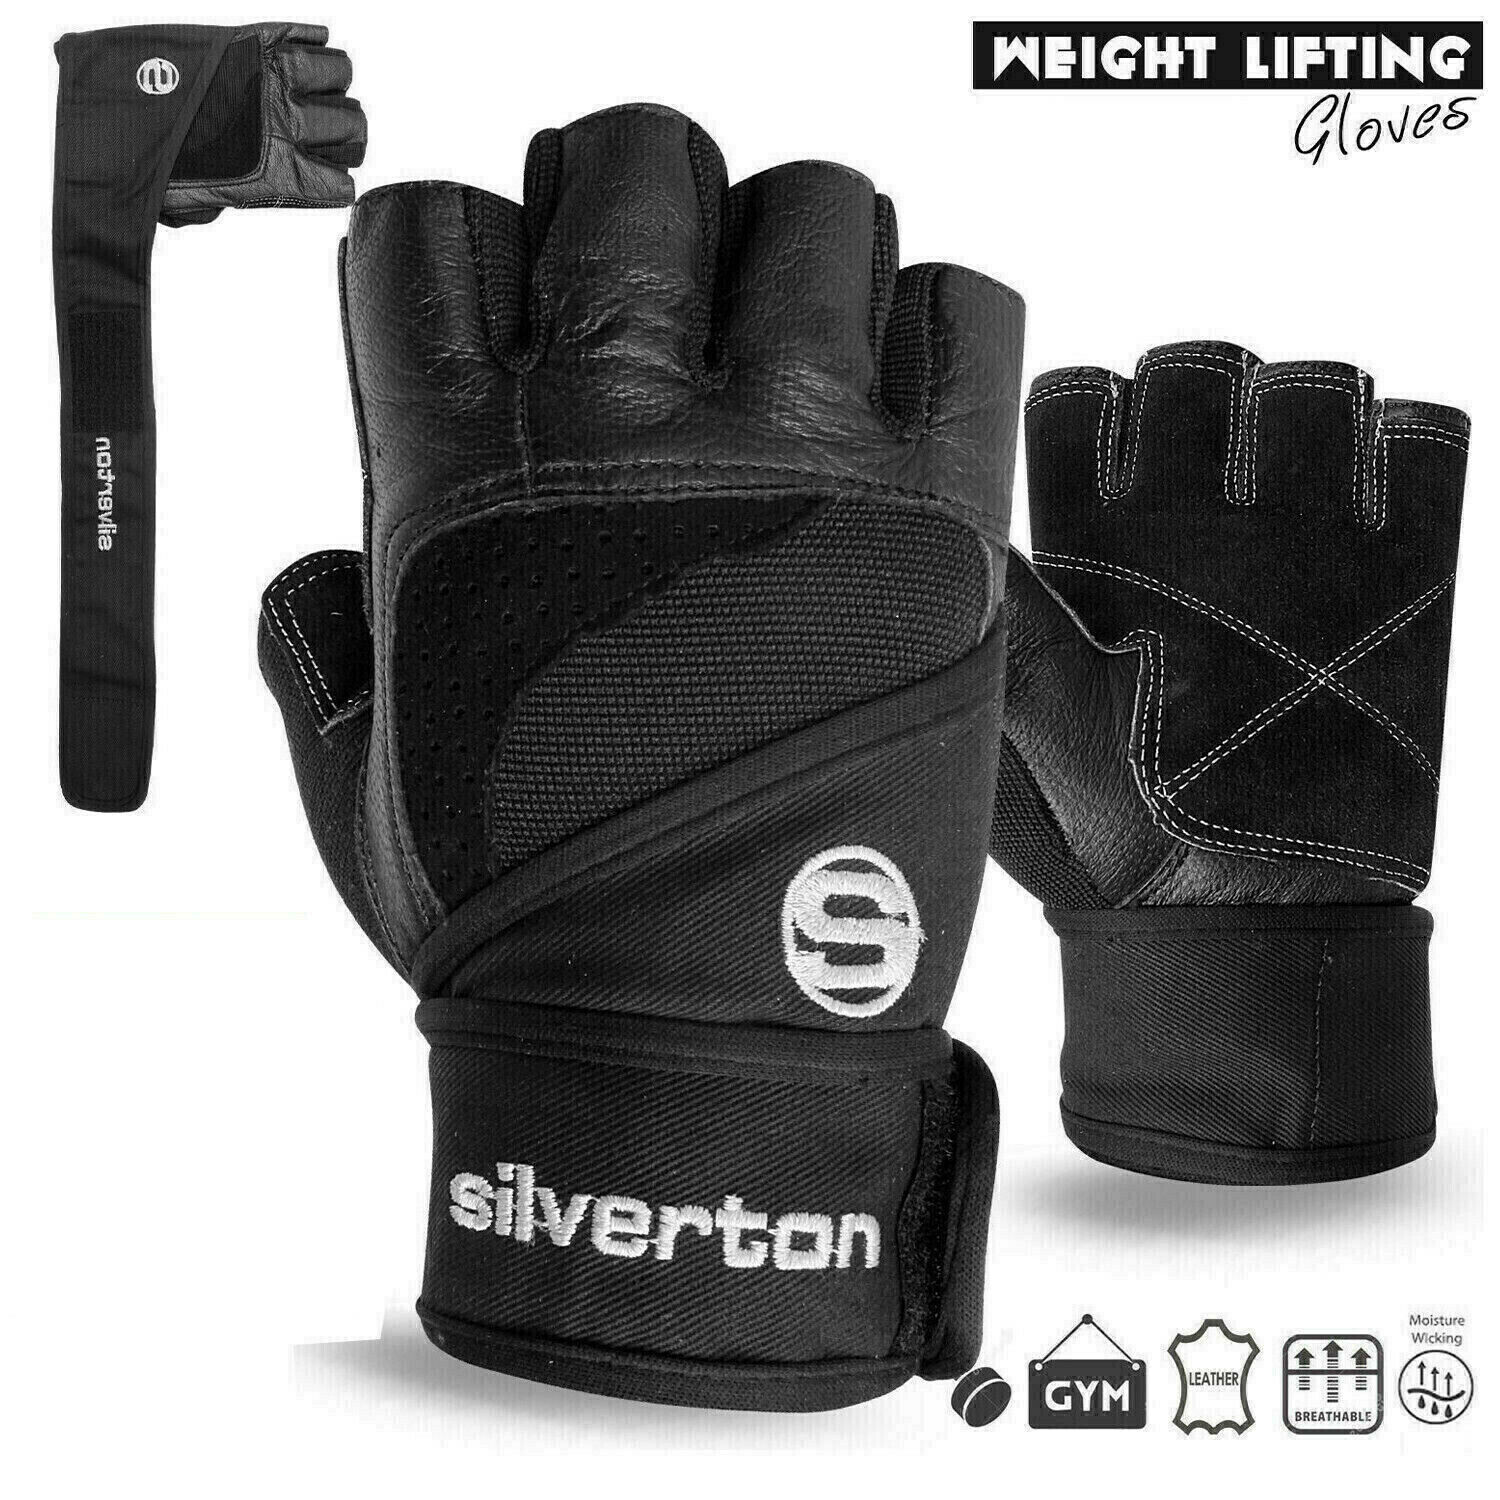 Weight Lifting Gloves Leather Fitness Gym Training Workout: WEIGHT LIFTING GLOVES Gym Fitness Workout Long Closure